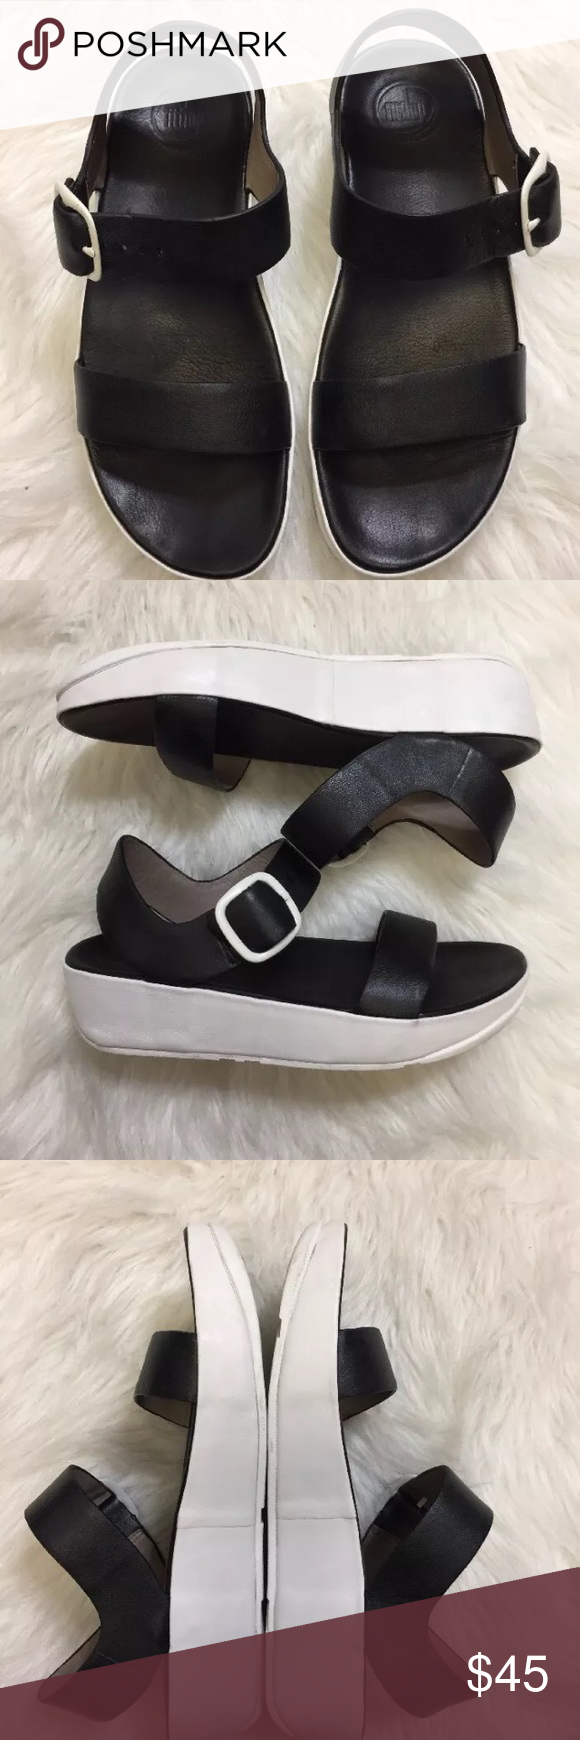 bd3bfd04d757f0 Size 8 Great condition. Lightly worn fit flop sandals. Black and white.  Clean except for bottom sole. Size 8. Fitflop Fitflop Shoes Sandals